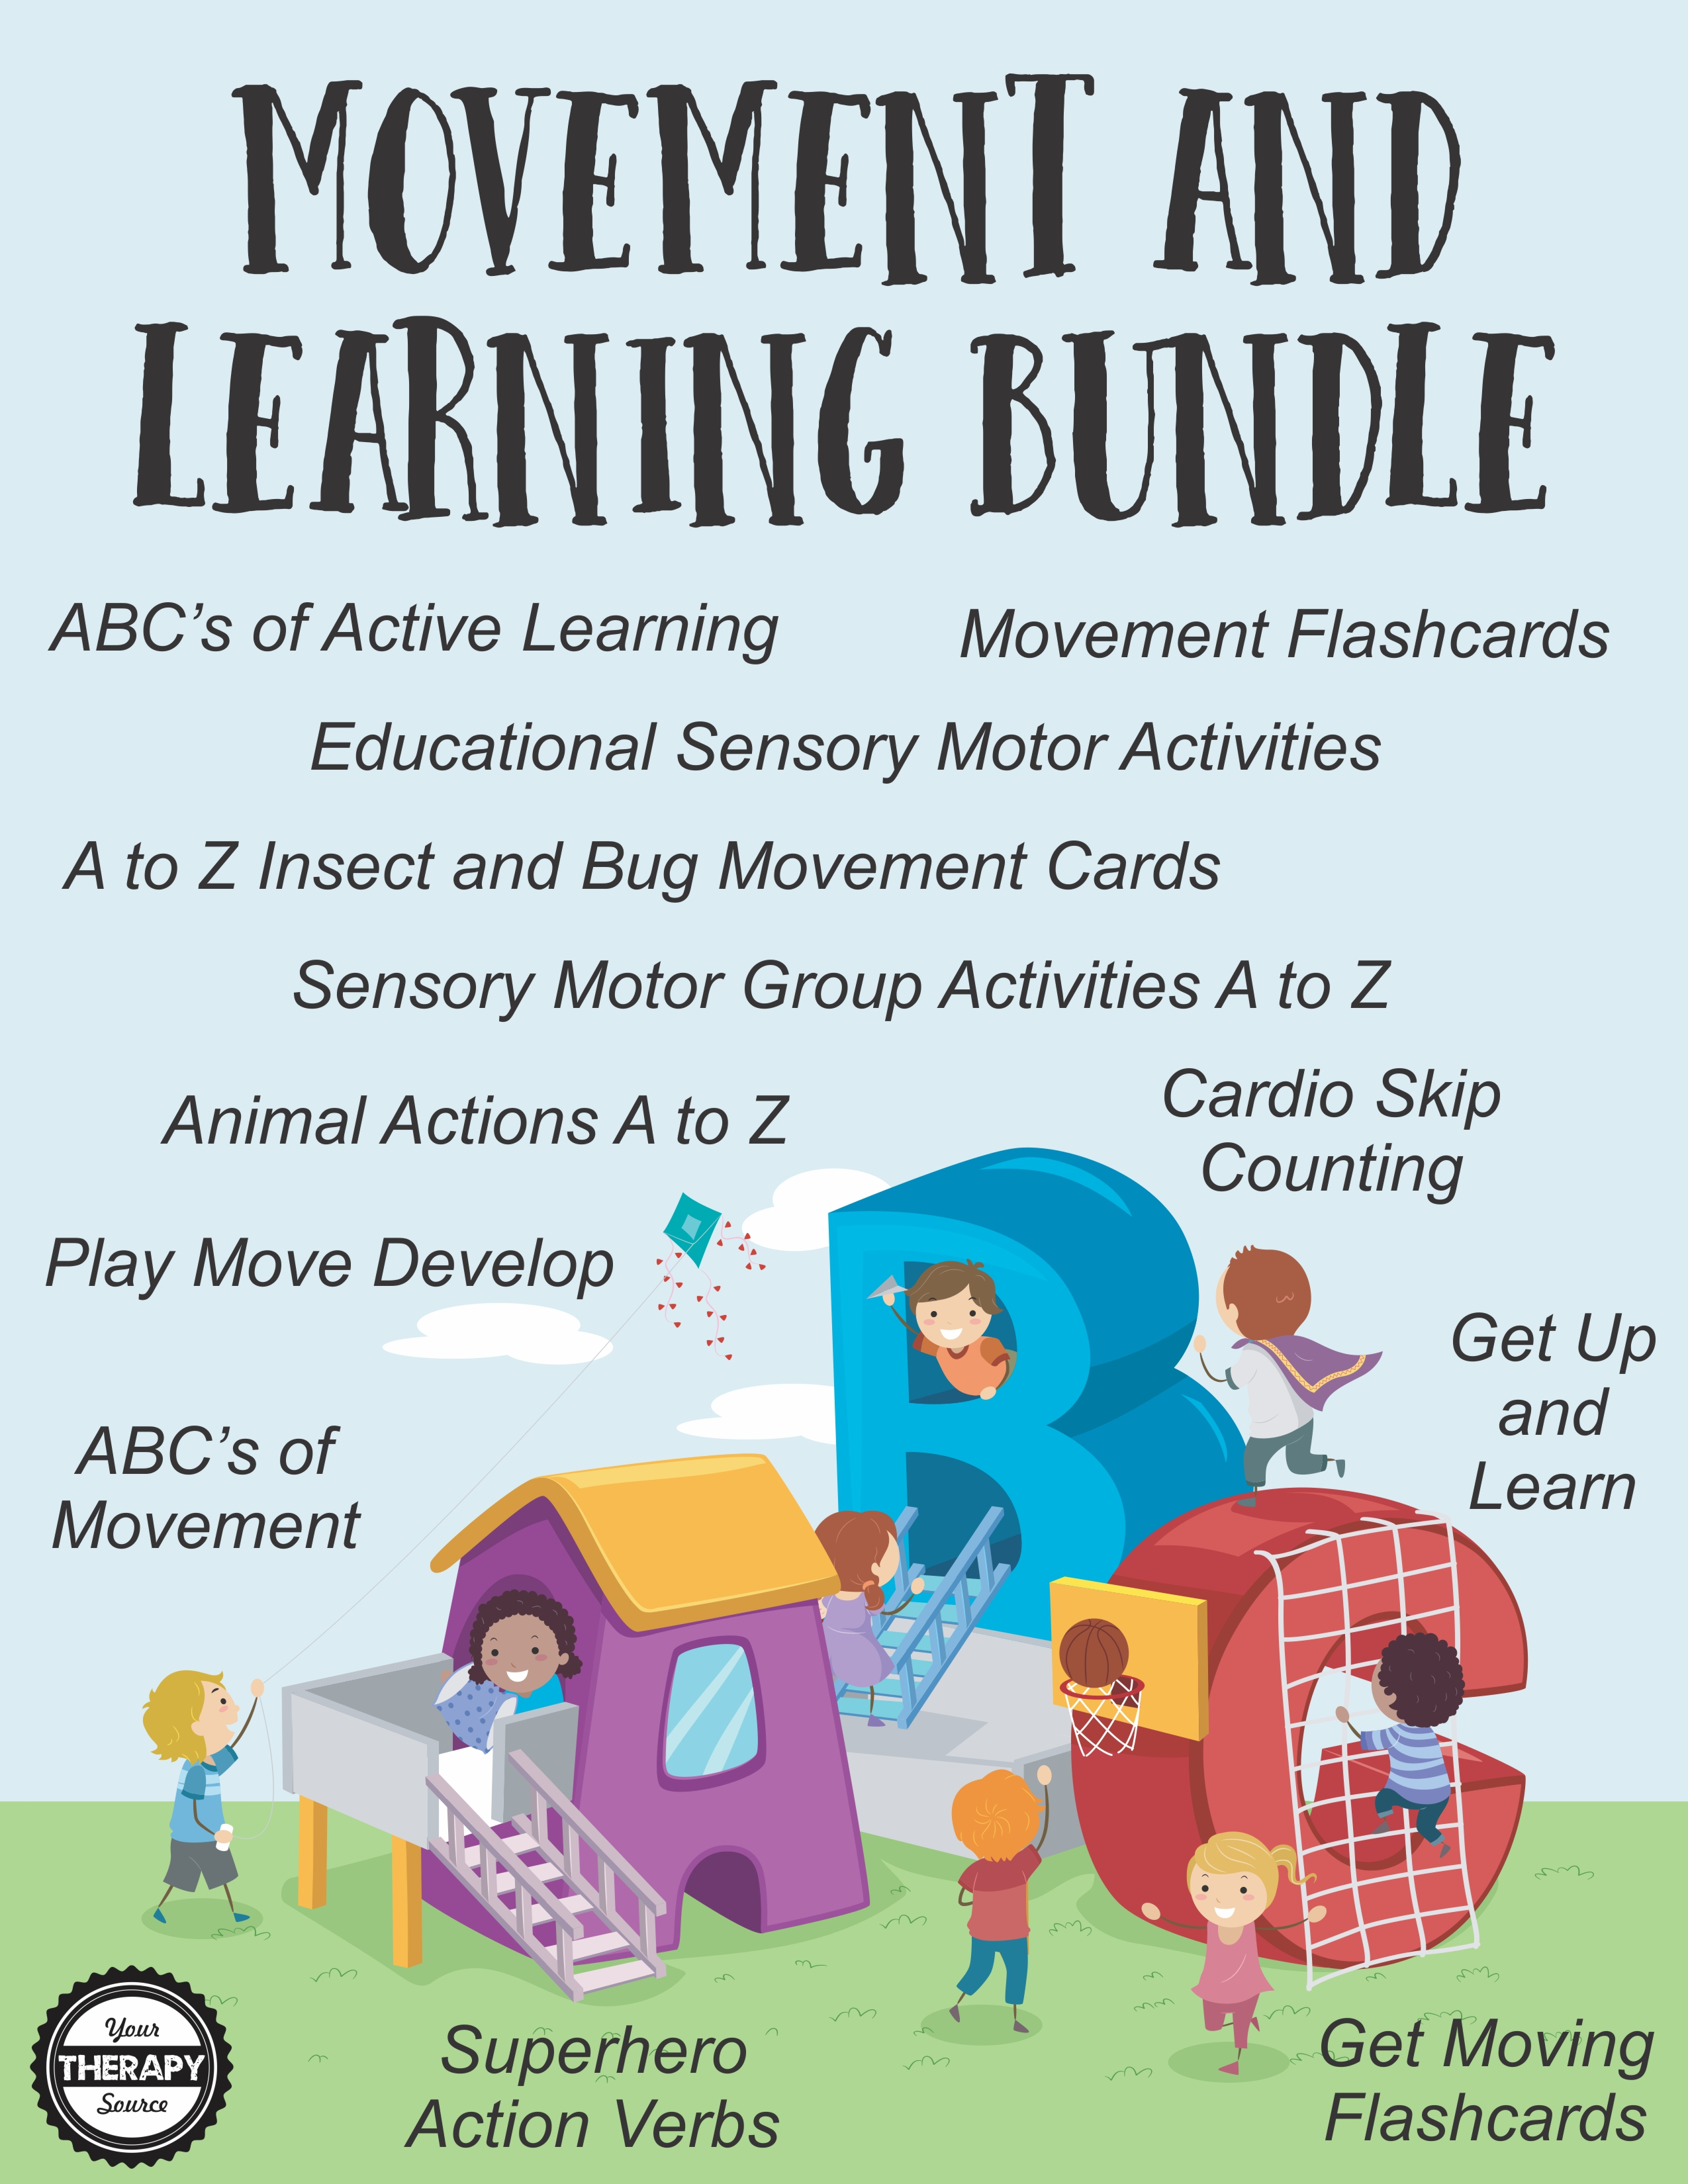 Movement and Learning Bundle from Your Therapy Source